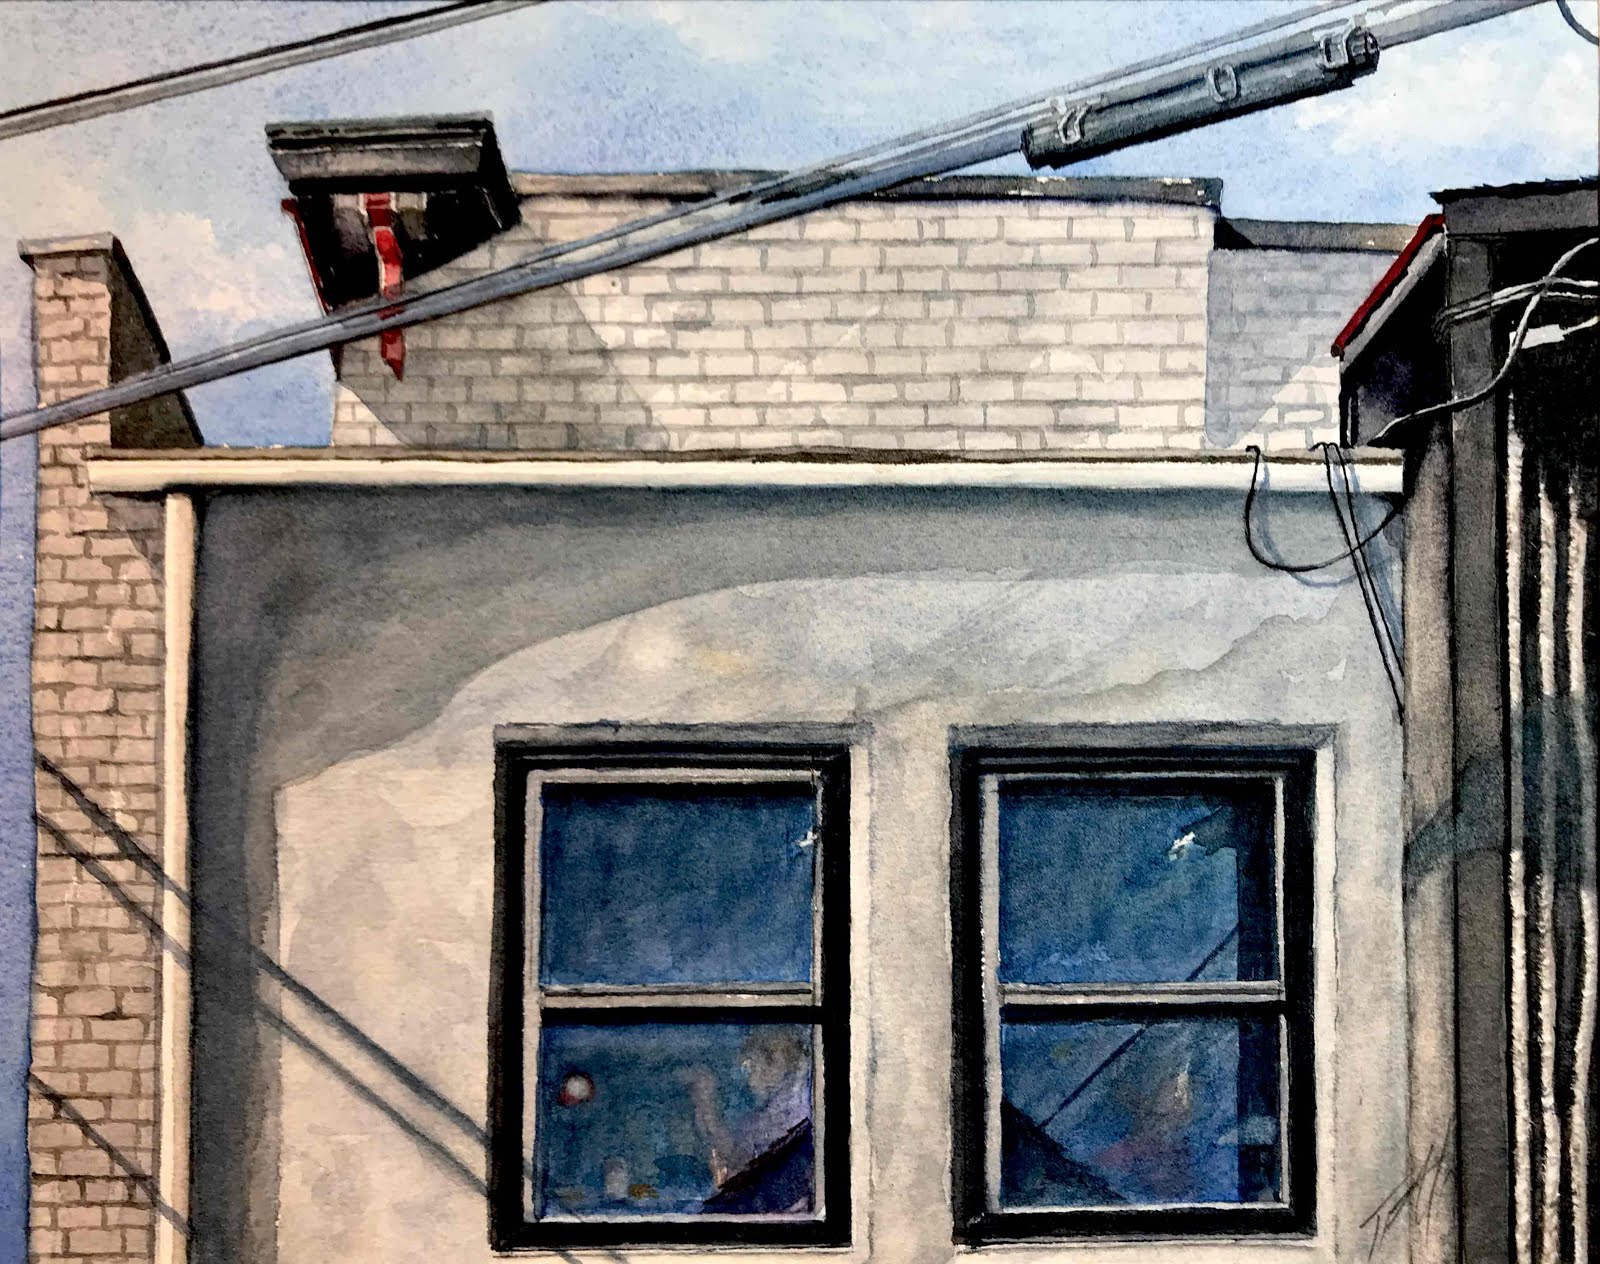 Siding with the Red Rooster (Annapolis)